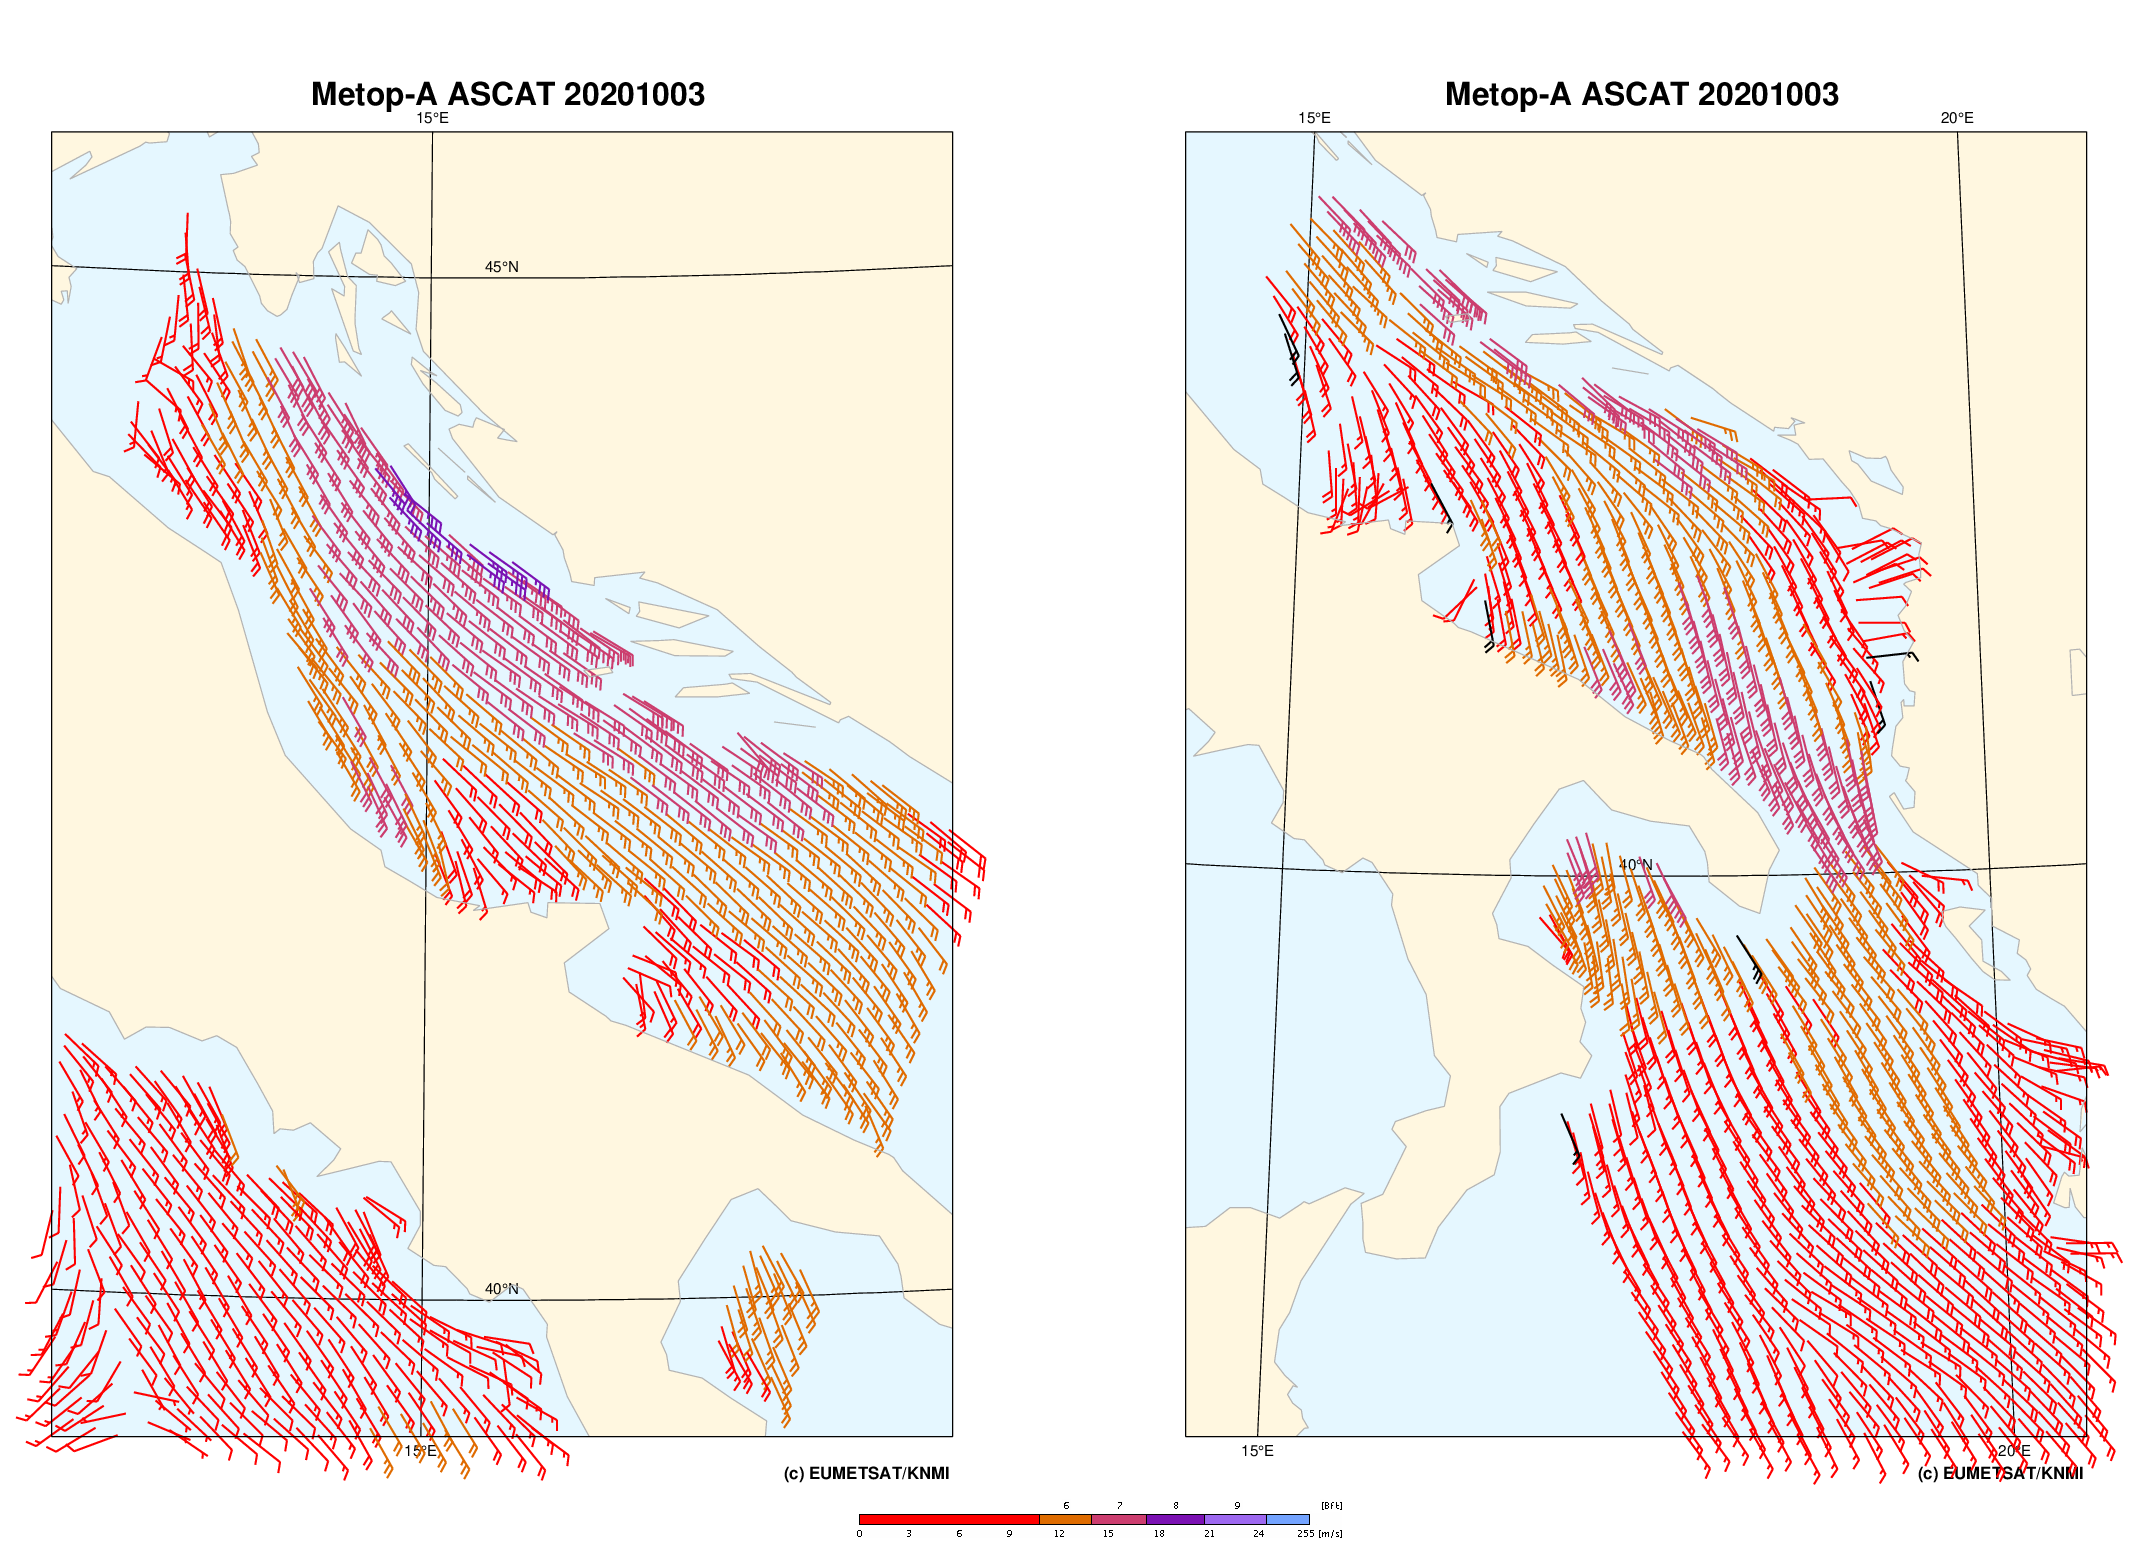 Metop-A ASCAT surface winds, derived by OSI SAF for 3 October 07:57 UTC (left) and 18:03 UTC (right).